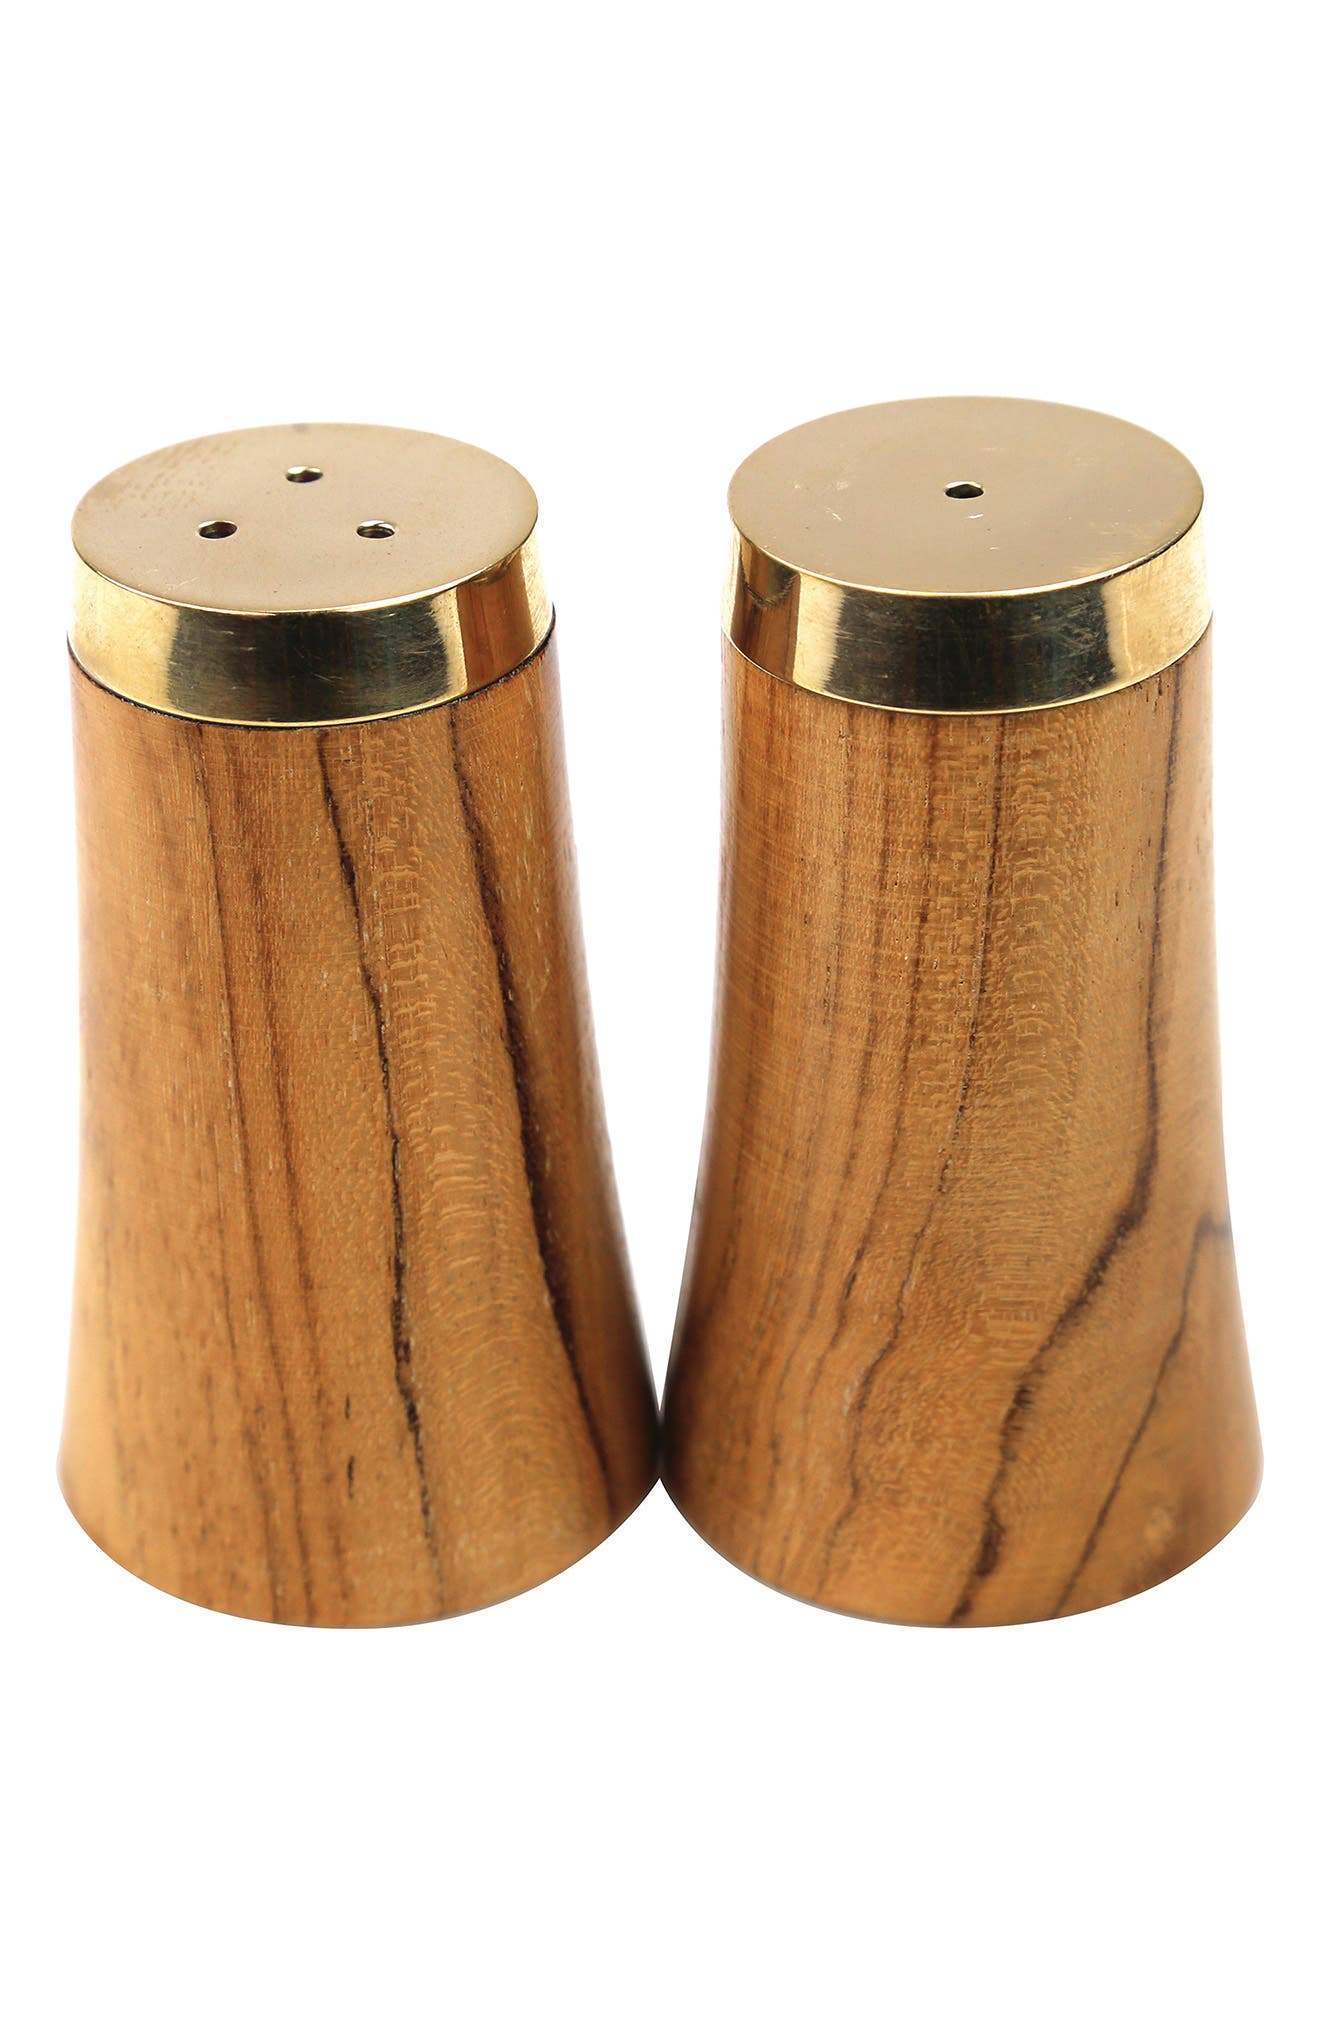 Perfect for your mid-century modern tabletop, these salt and pepper shakers are shaped from warm, grainy teak and topped with shiny golden lids. Style Name: Be Home Teak Salt & Pepper Shakers. Style Number: 6086034. Available in stores.